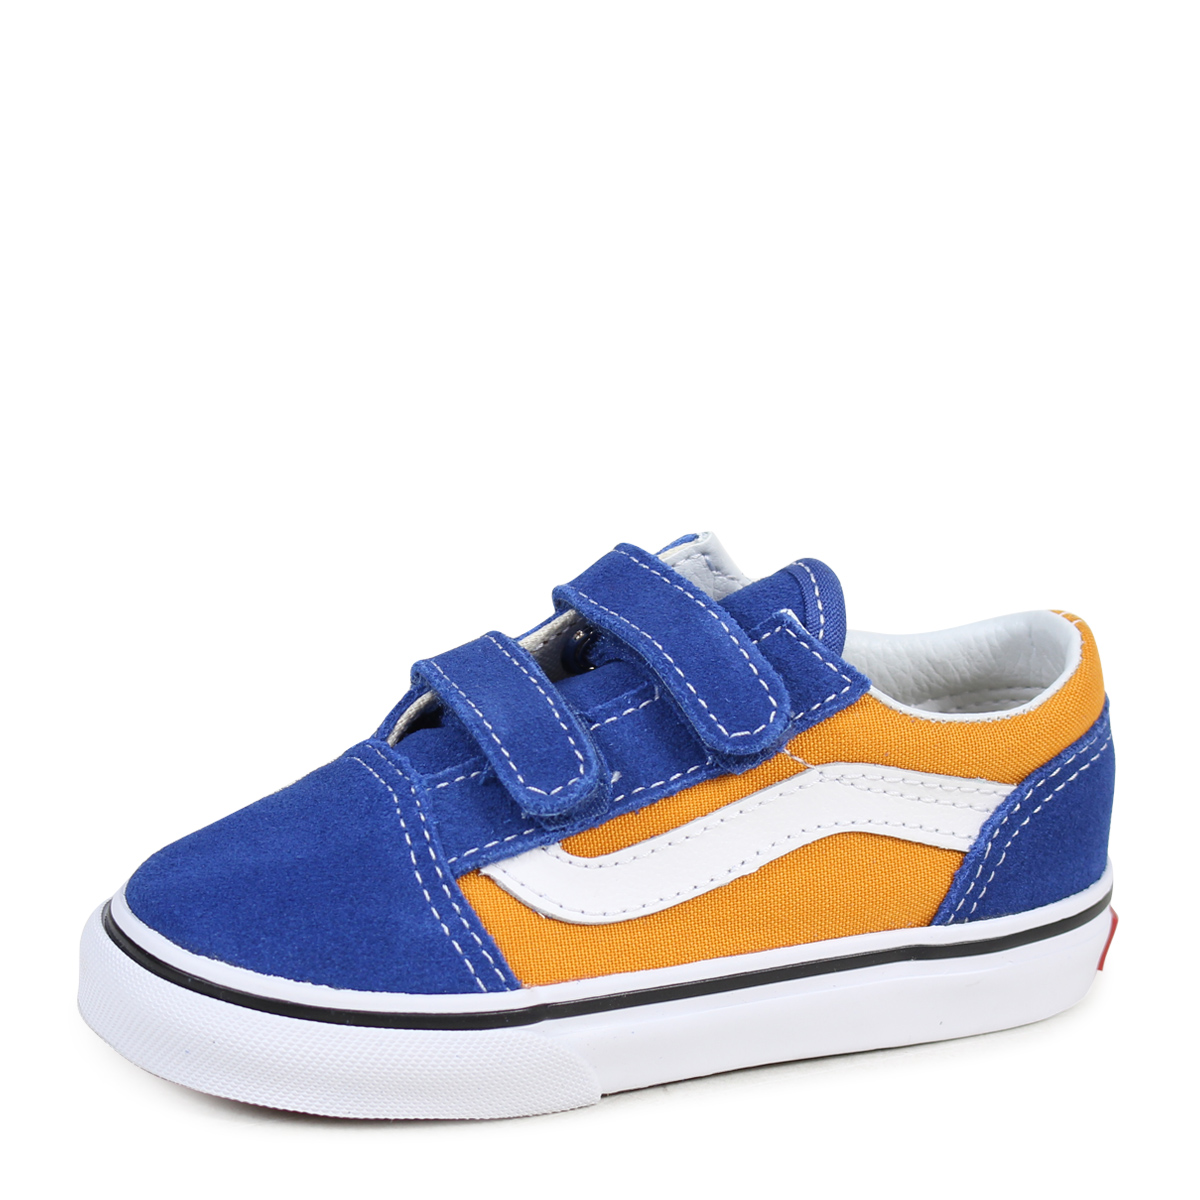 VANS OLD SKOOL V old school baby sneakers vans station wagons VN0A344KQ1B blue [183]